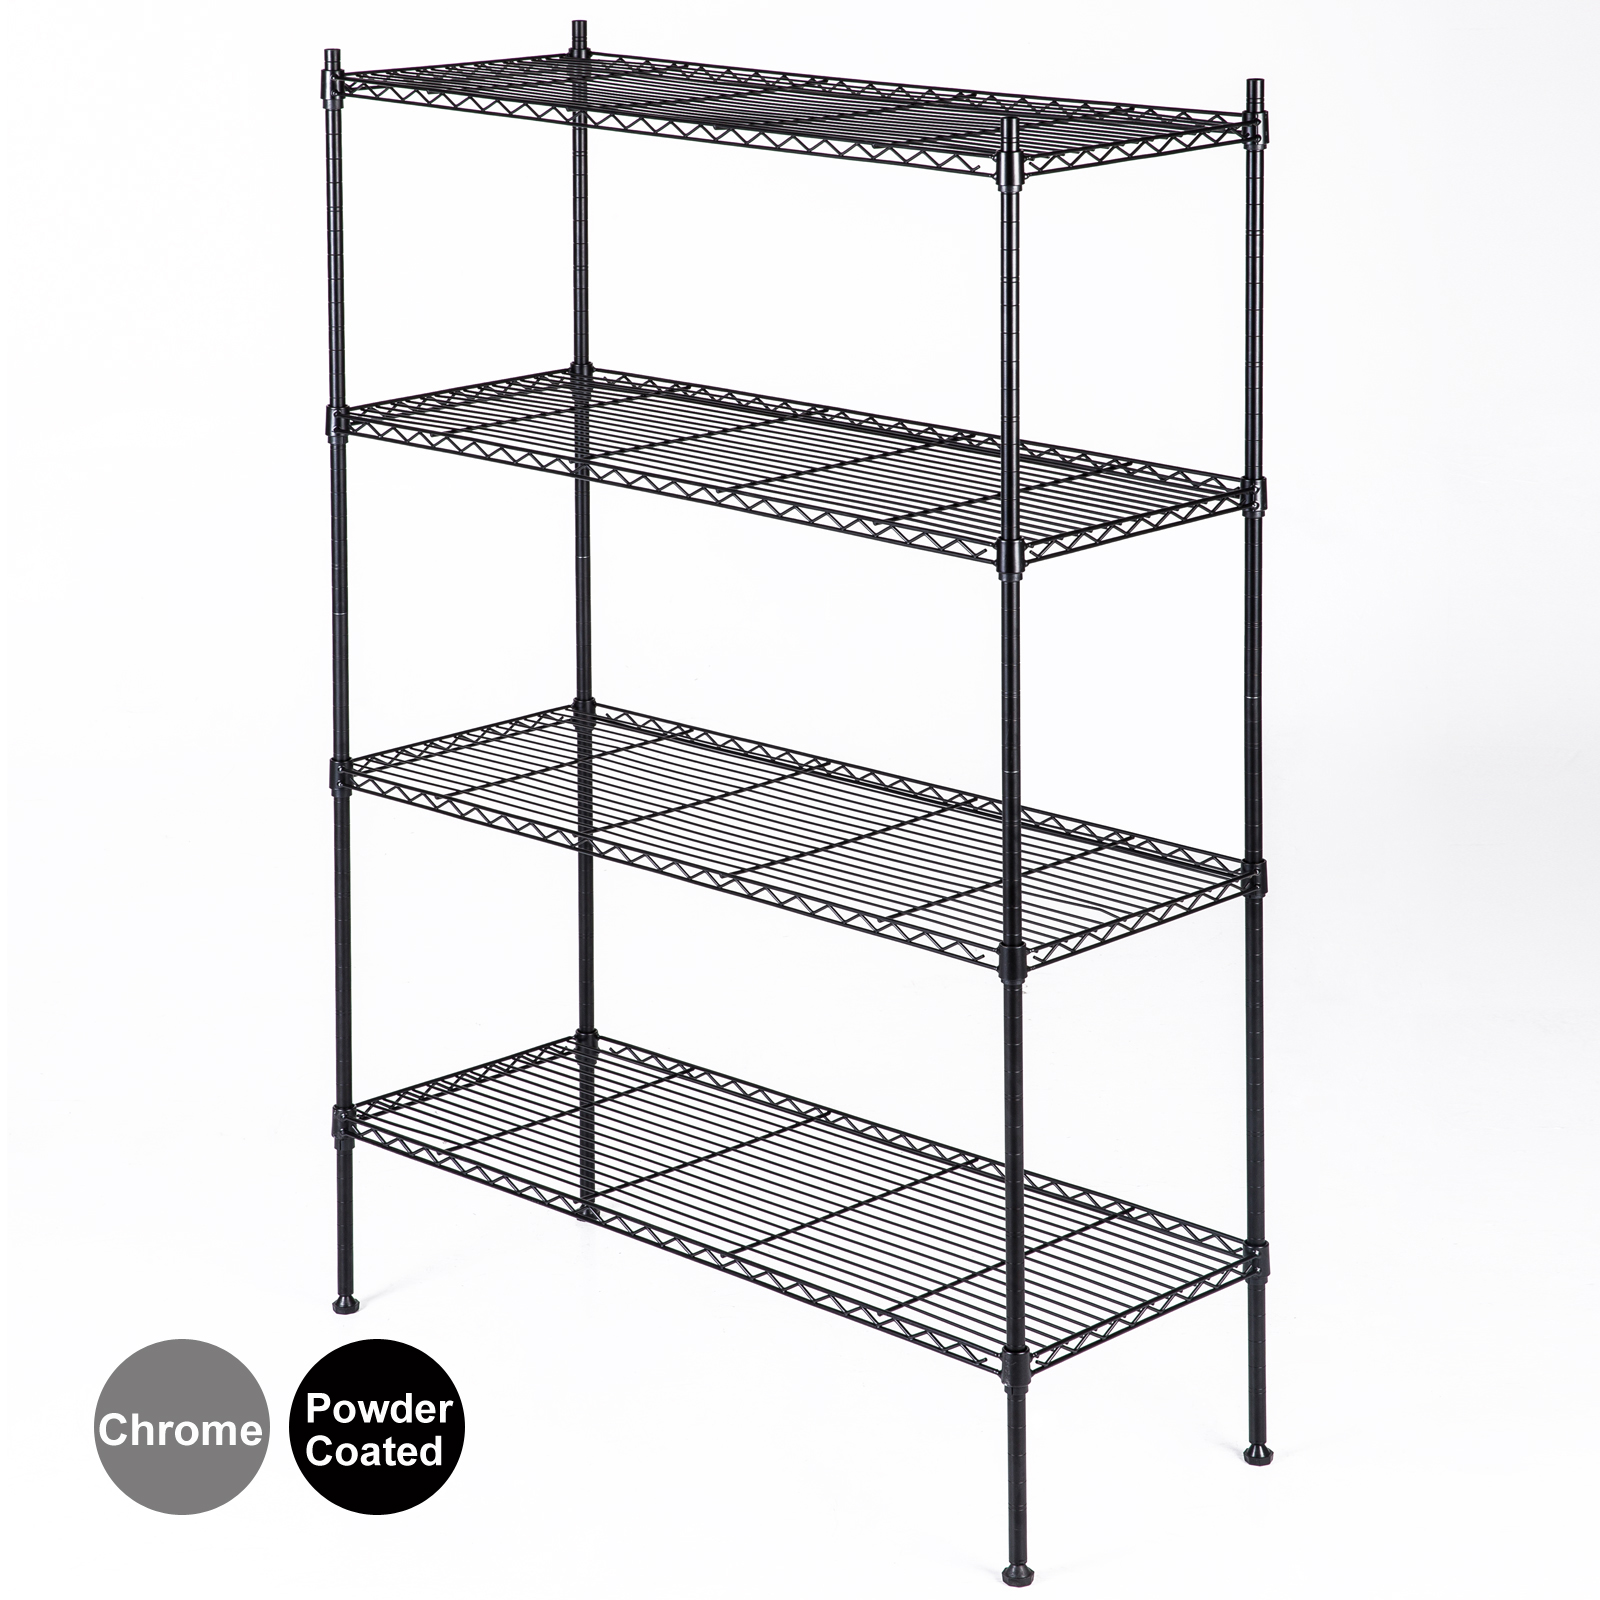 chrome kitchen storage racks 4 tier wire shelving rack organizer kitchen steel shelf 5421